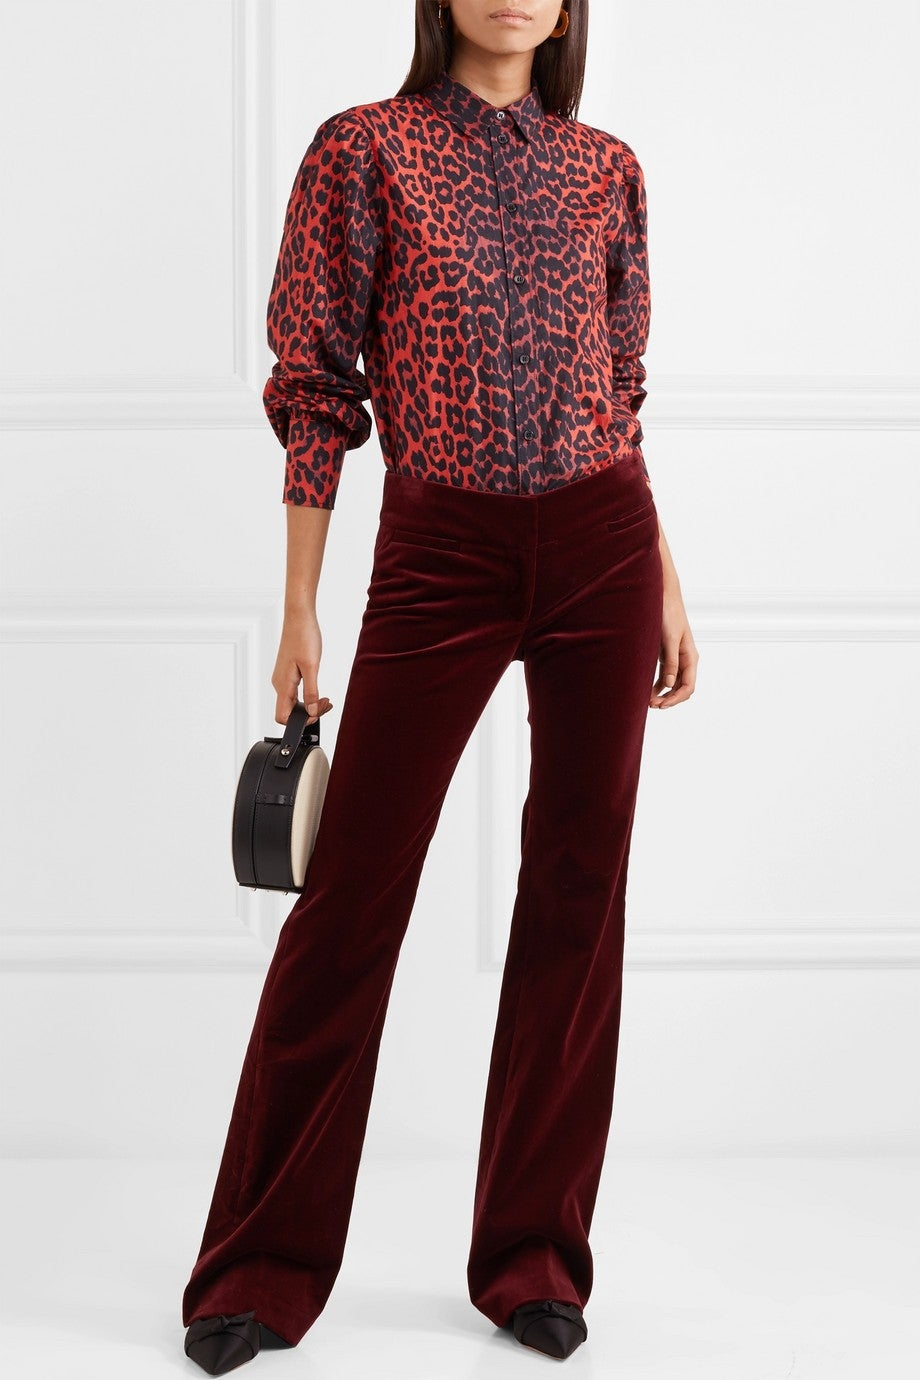 Ganni red leopard print shirt